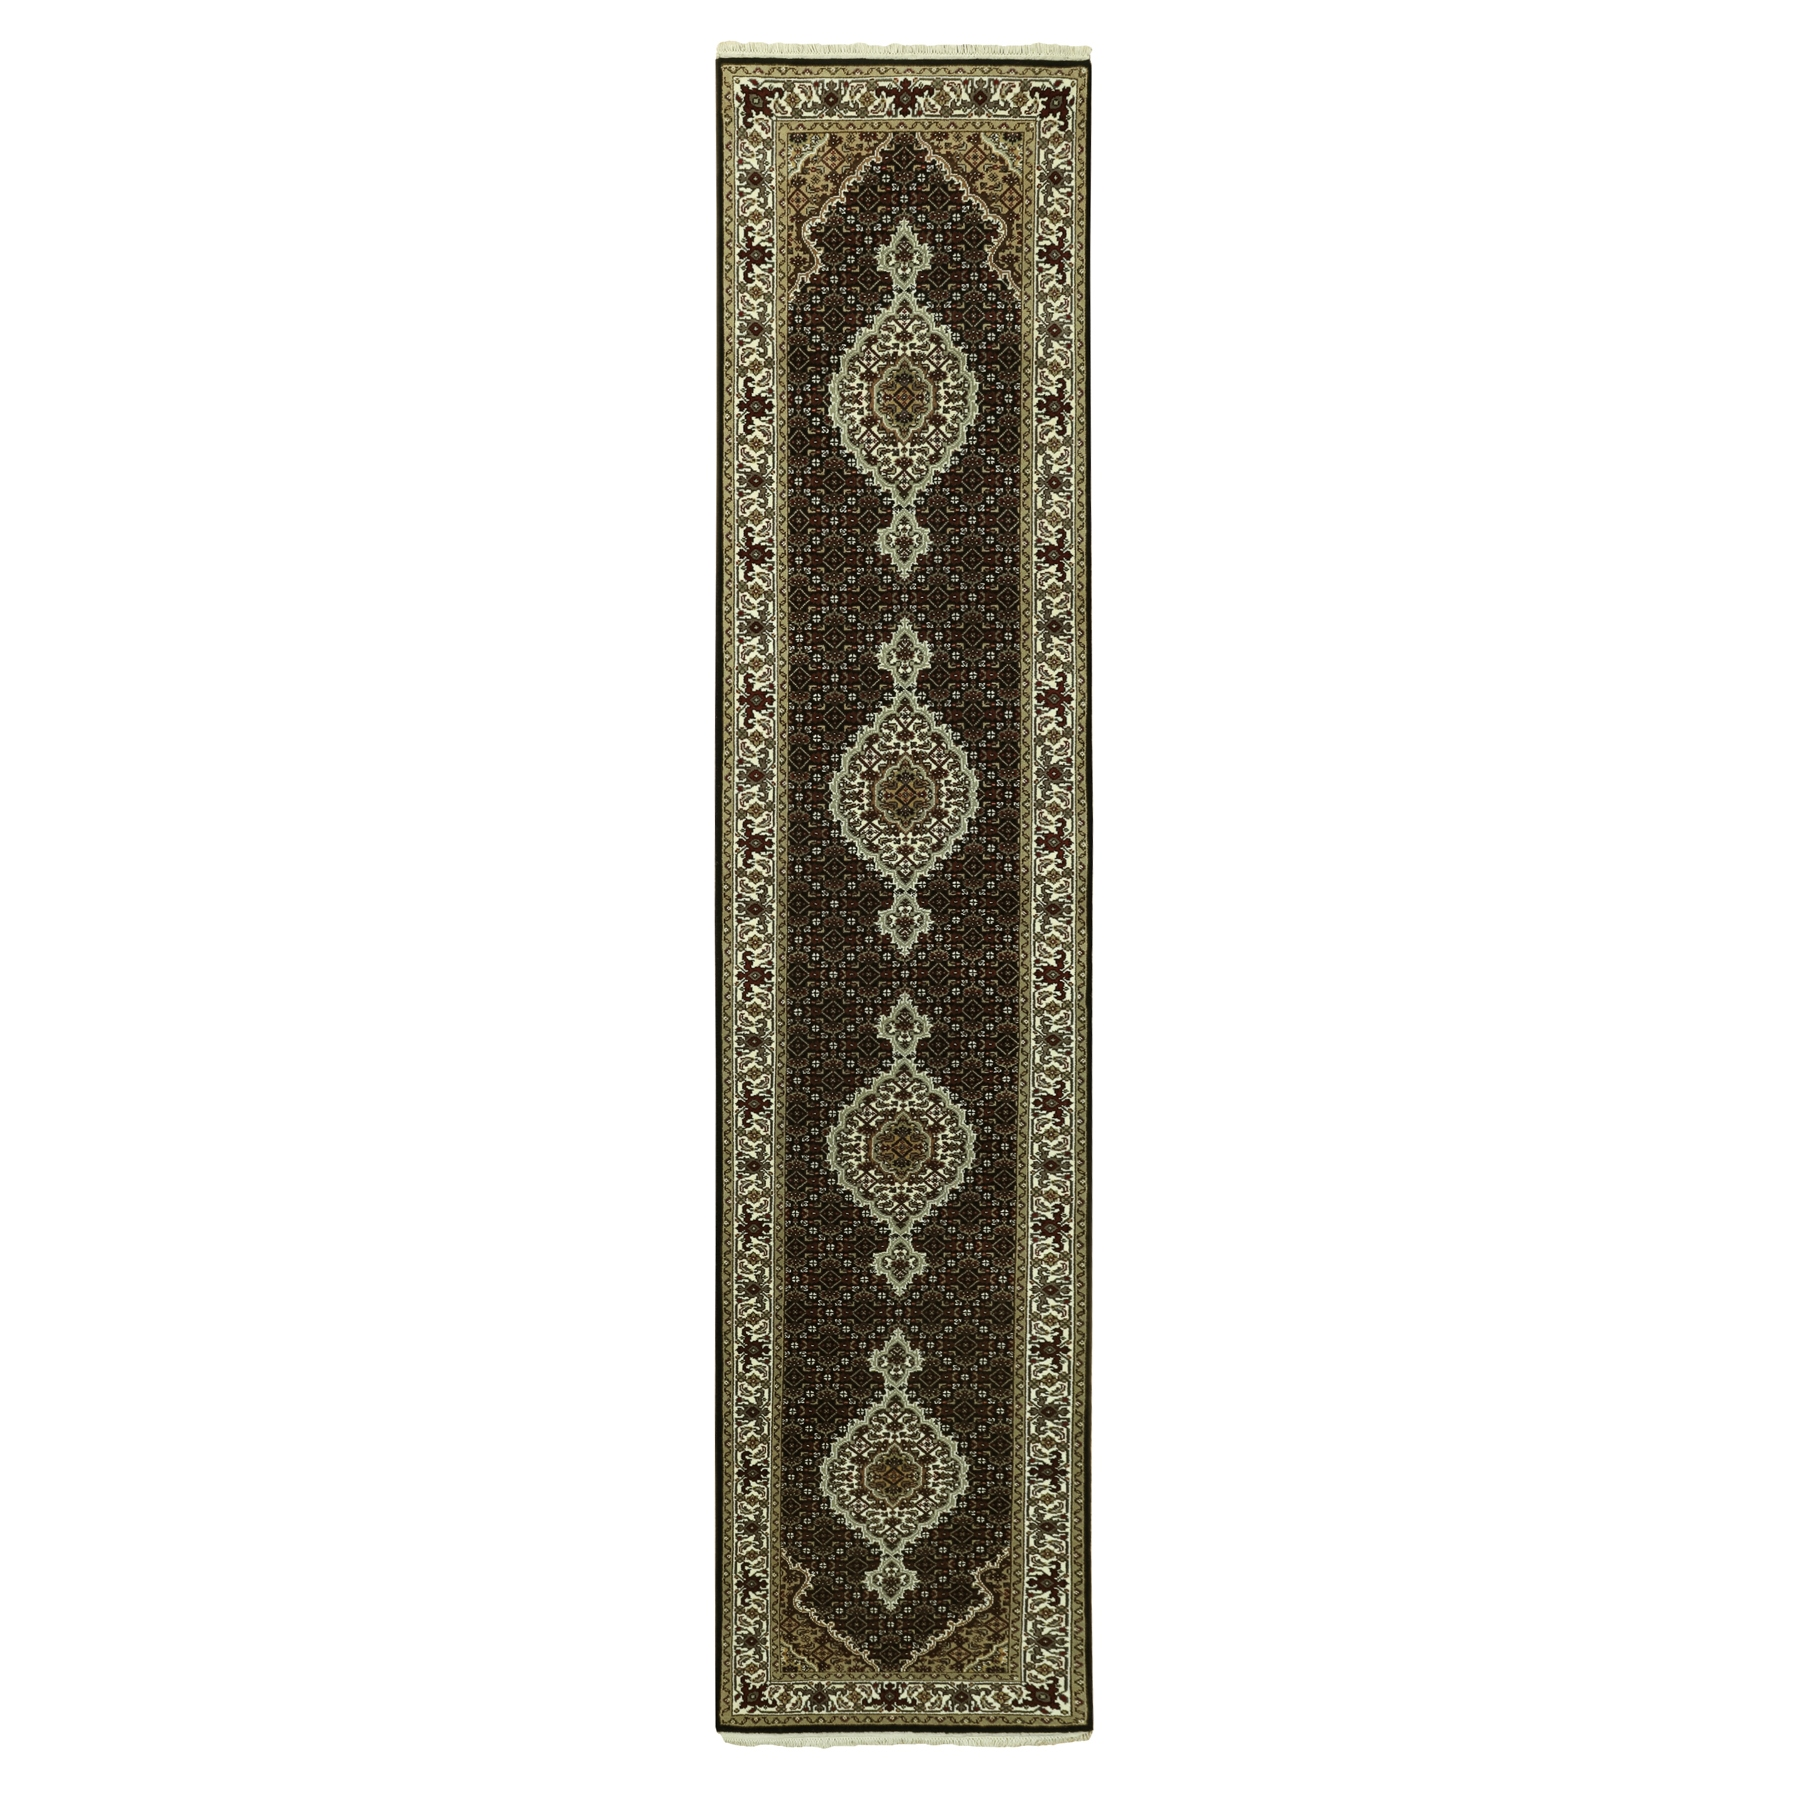 Pirniakan Collection Hand Knotted Red Rug No: 1117698